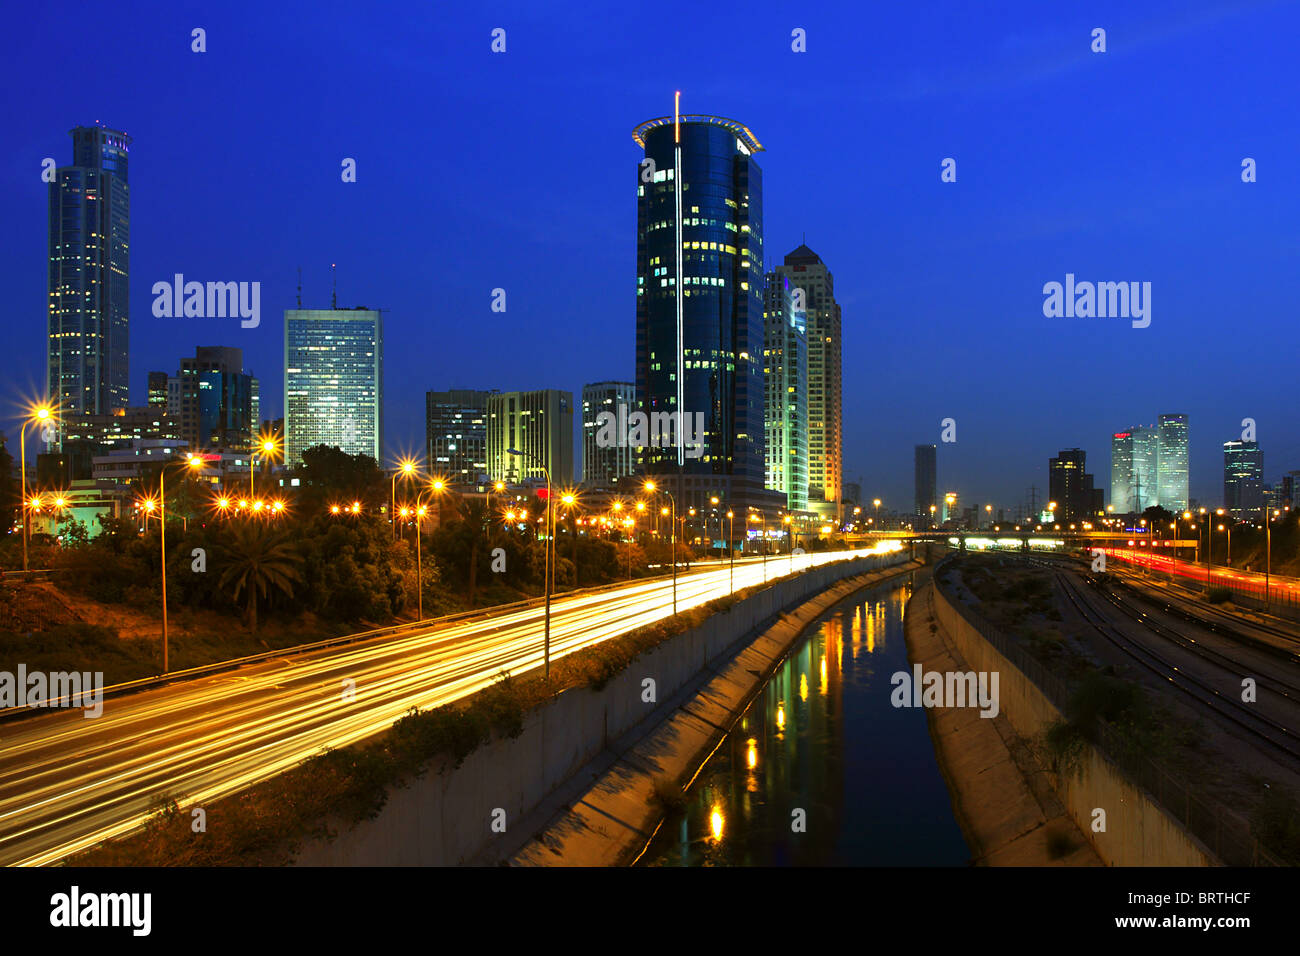 Tel Aviv downtown and Ayalon freeway at night. - Stock Image